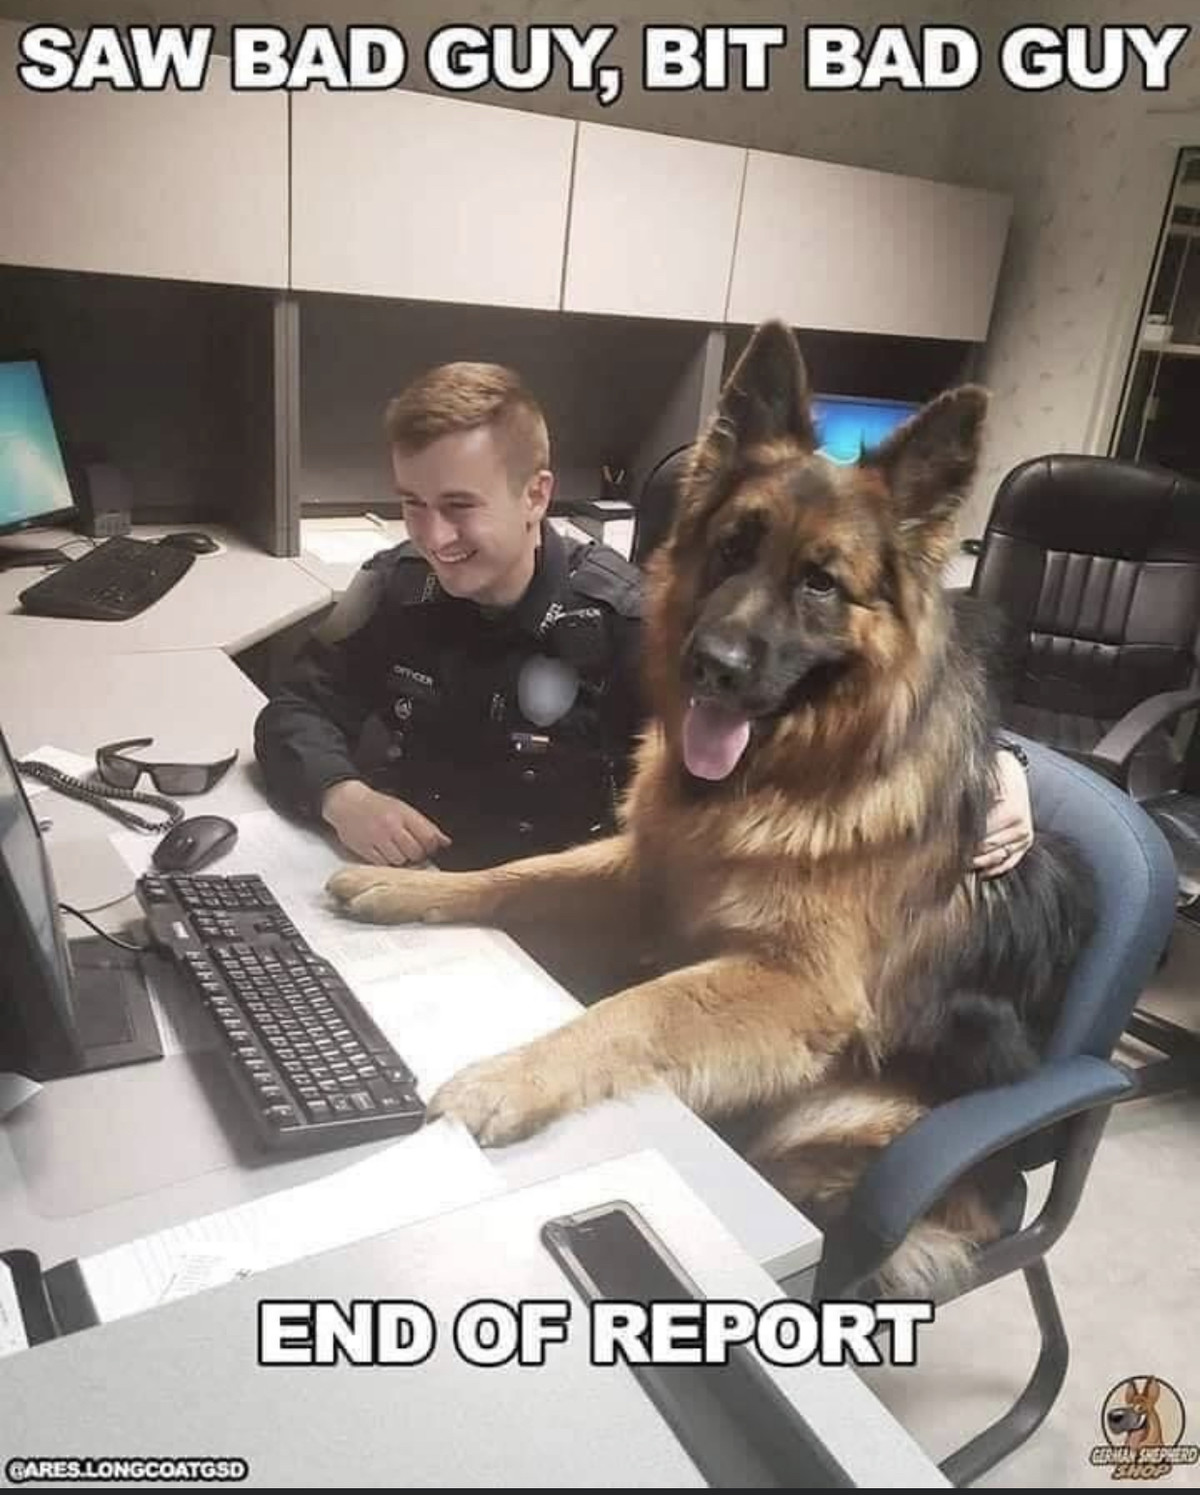 Street are ruff!. .. We got questioned in court about why we didn't start CPR on a teenager who blew his brains out. We simply referred to the photo where half his head was missing.